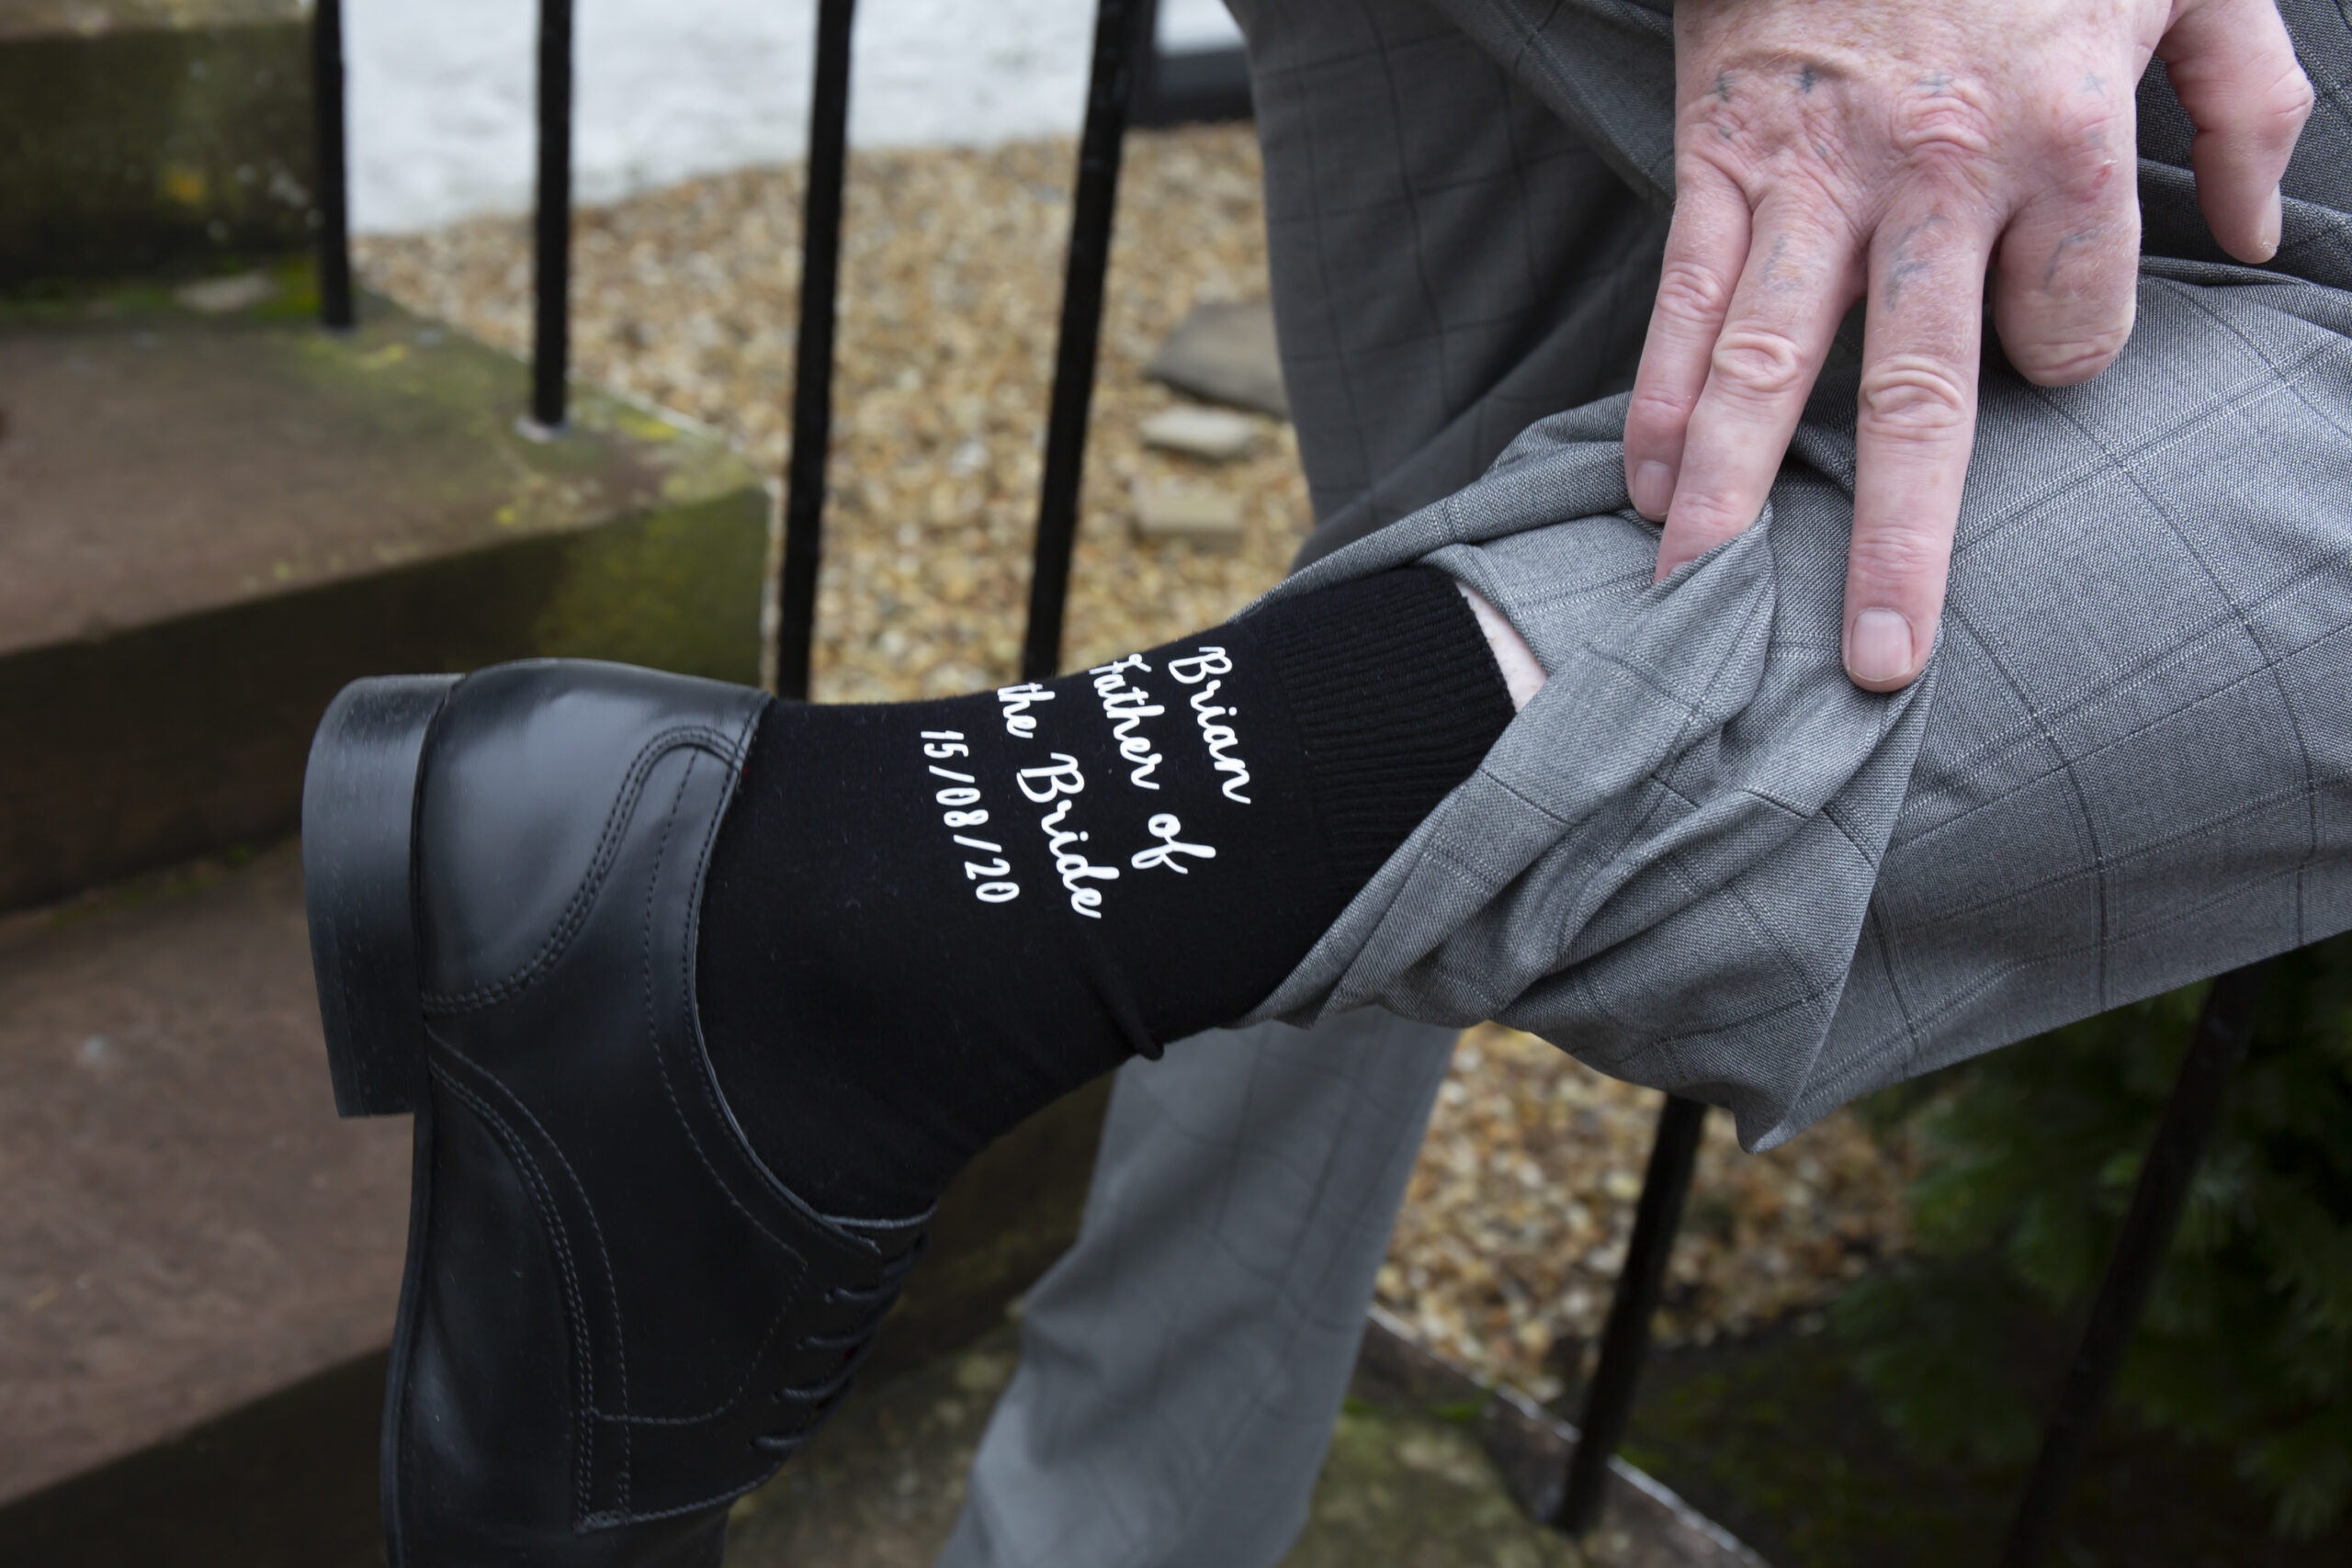 father of the bride shows off his special wedding socks